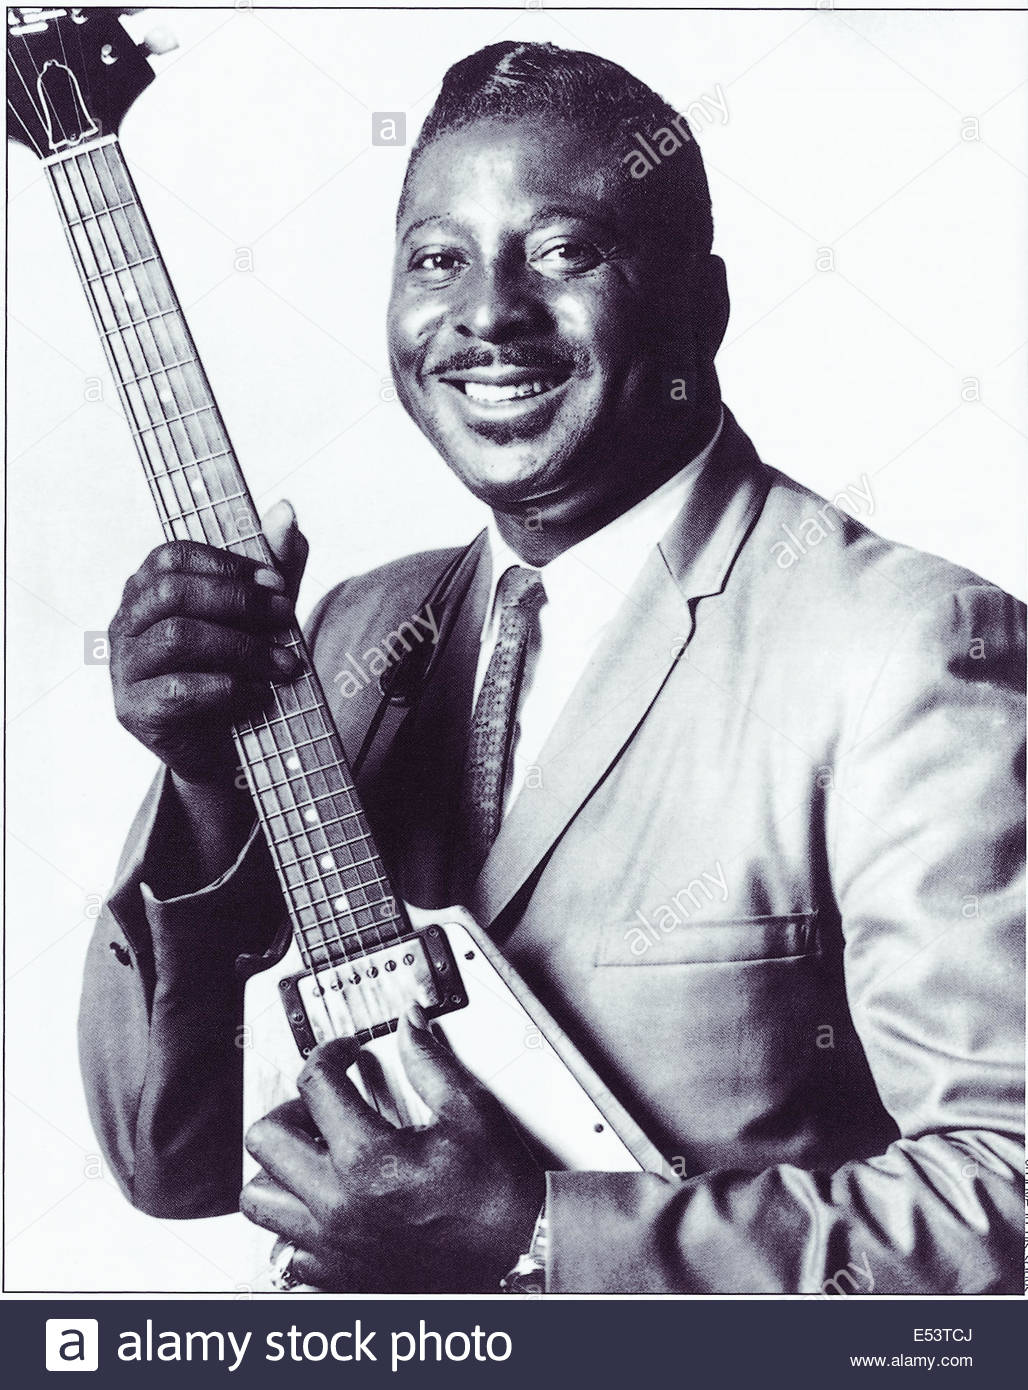 Albert King (1923 Ð 1992) American blues guitarist and singer.  Courtesy Granamour Weems Collection.  Editorial - Stock Image